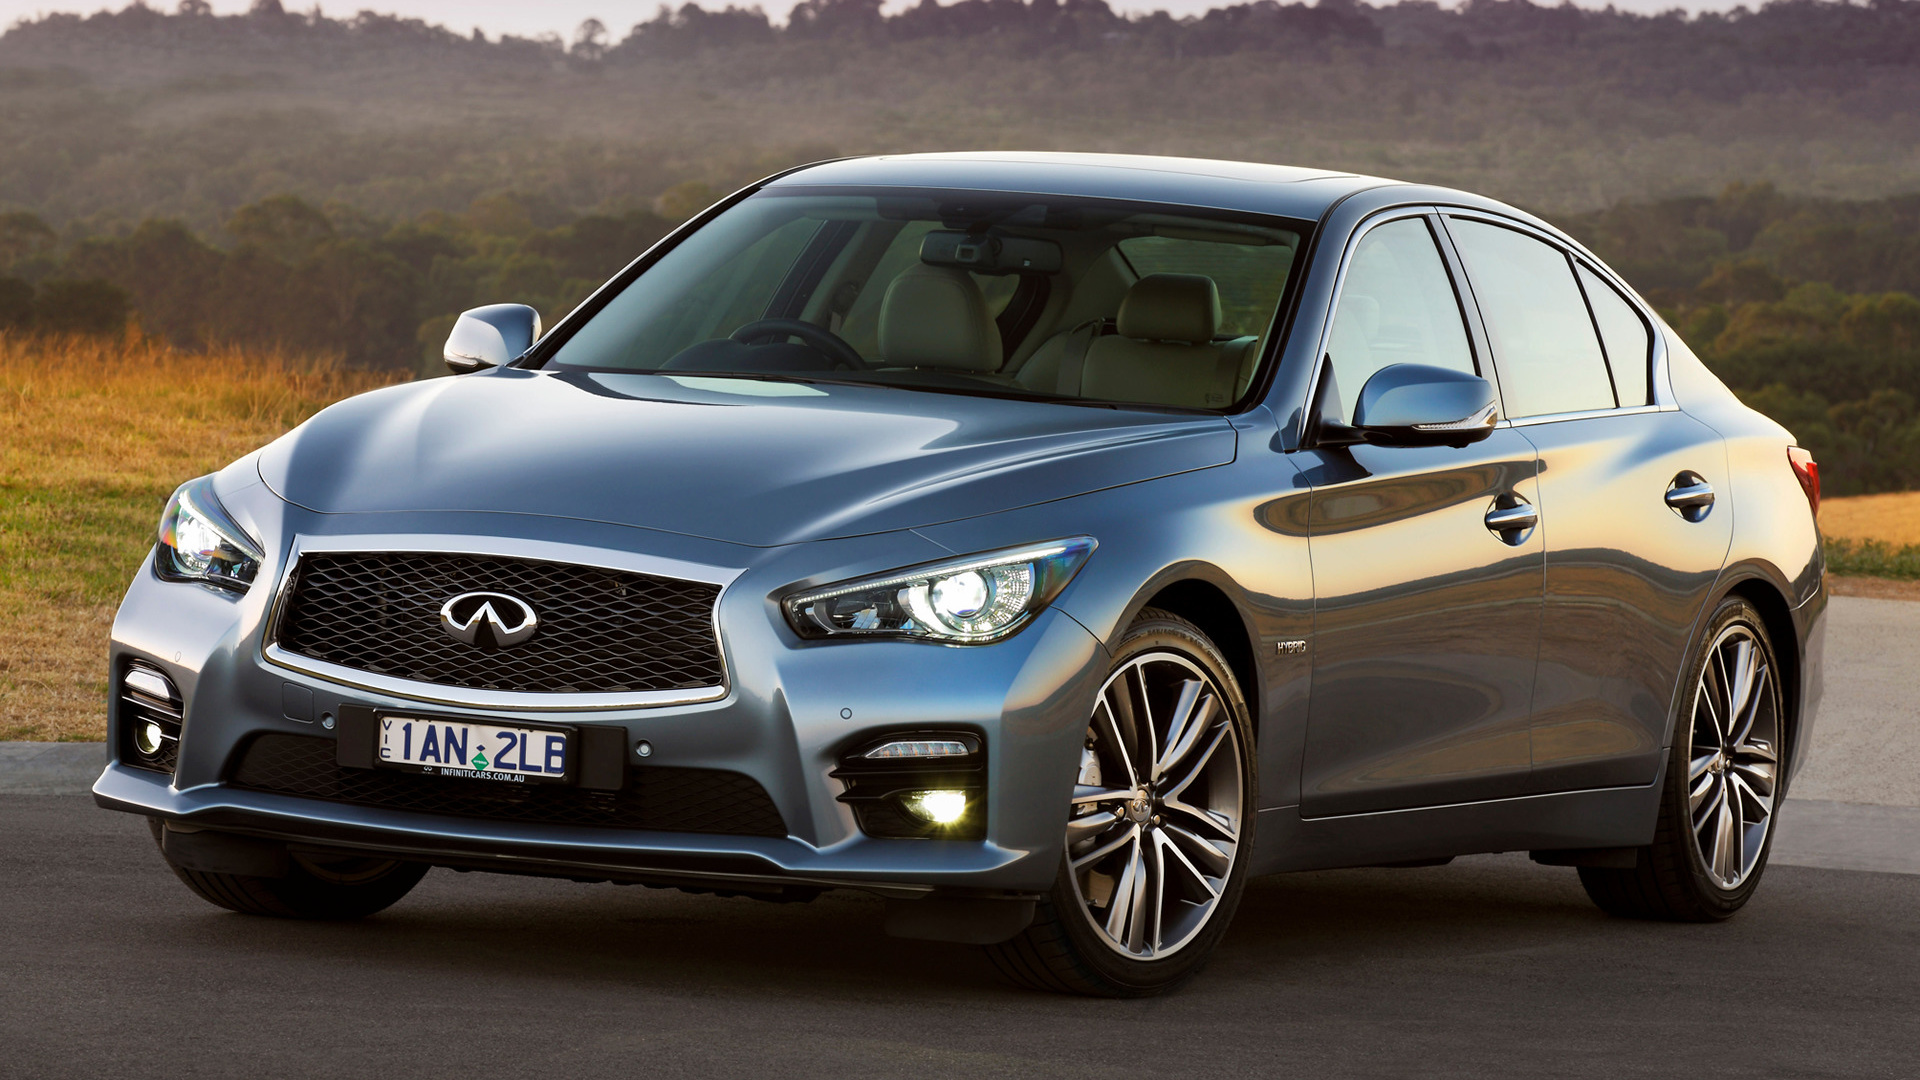 2014 infiniti q50 sport hybrid hd wallpaper background. Black Bedroom Furniture Sets. Home Design Ideas